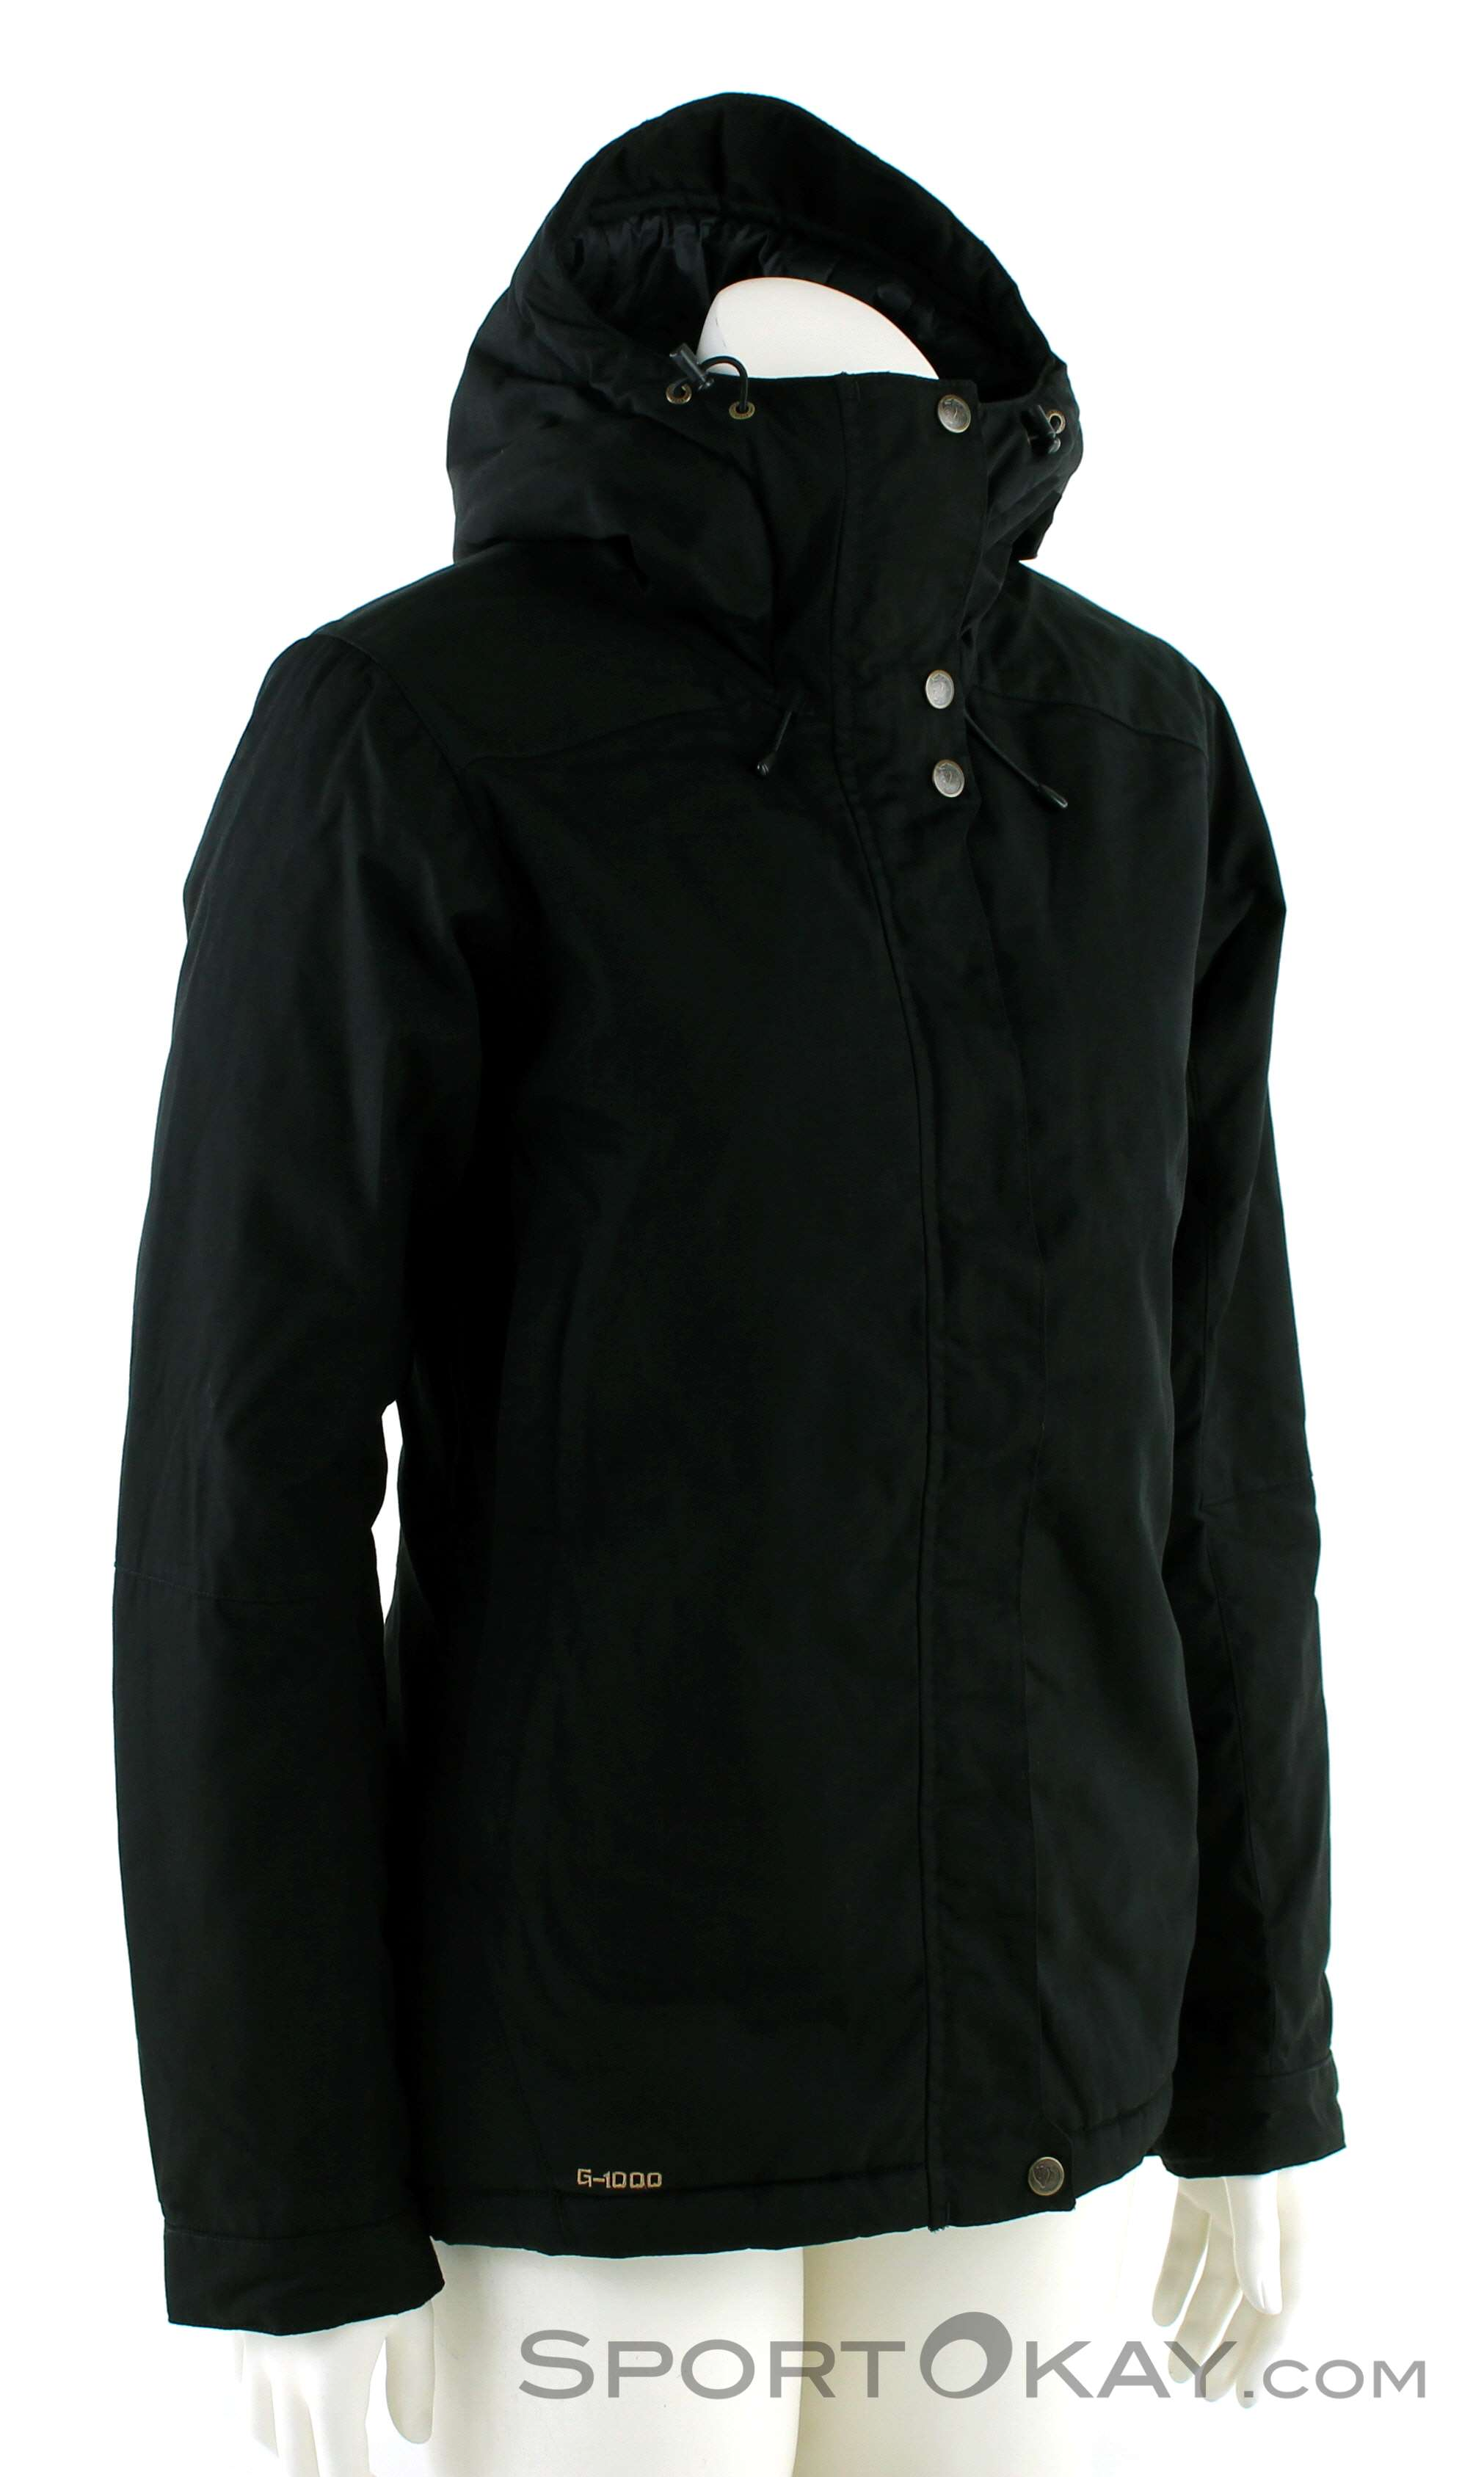 Womens Rain & Outdoor Jackets From Top Brands Over 1000